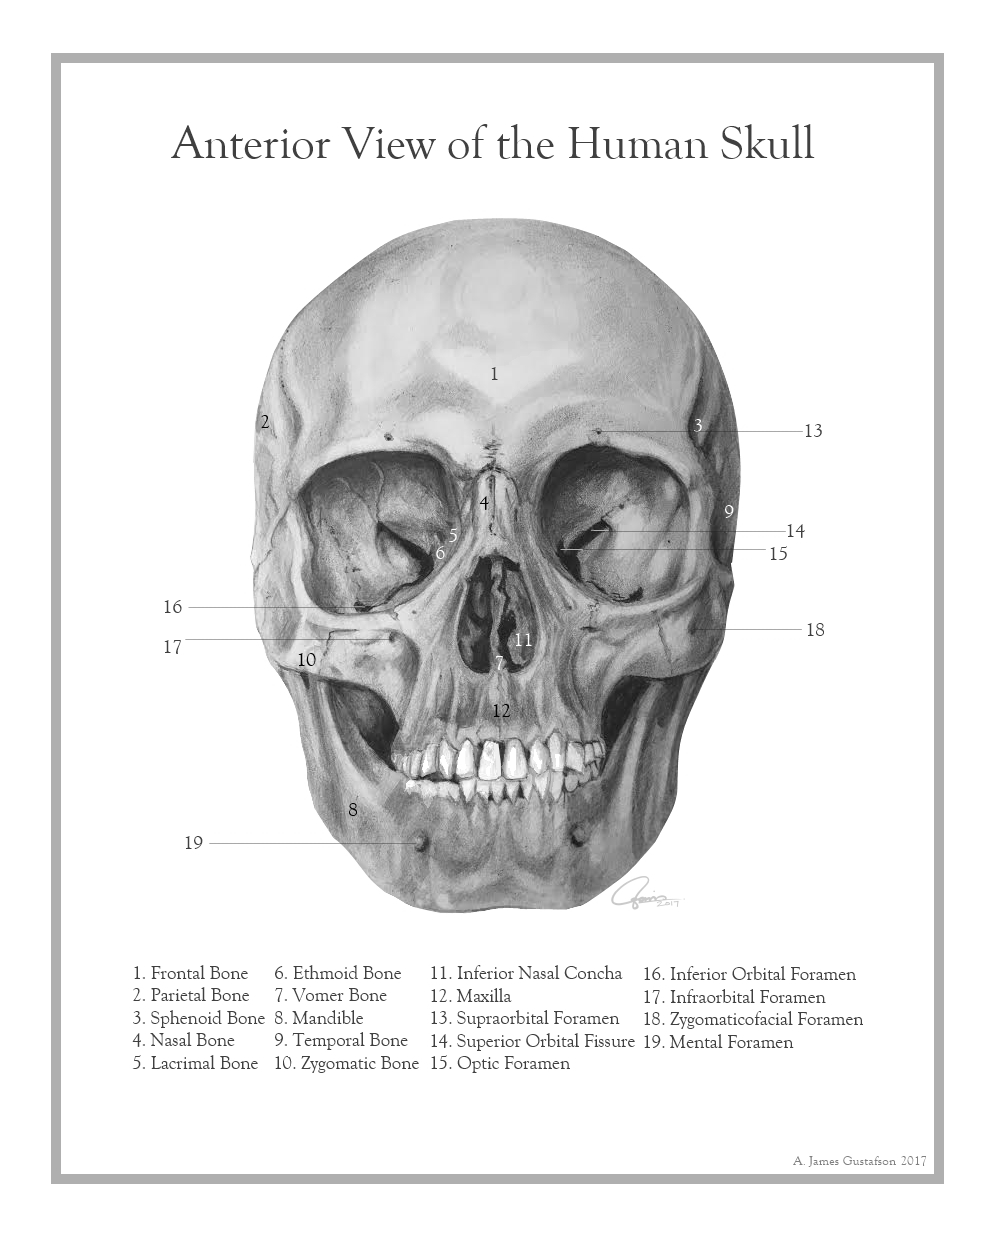 Anterior View of the Human Skull by ajgus on DeviantArt